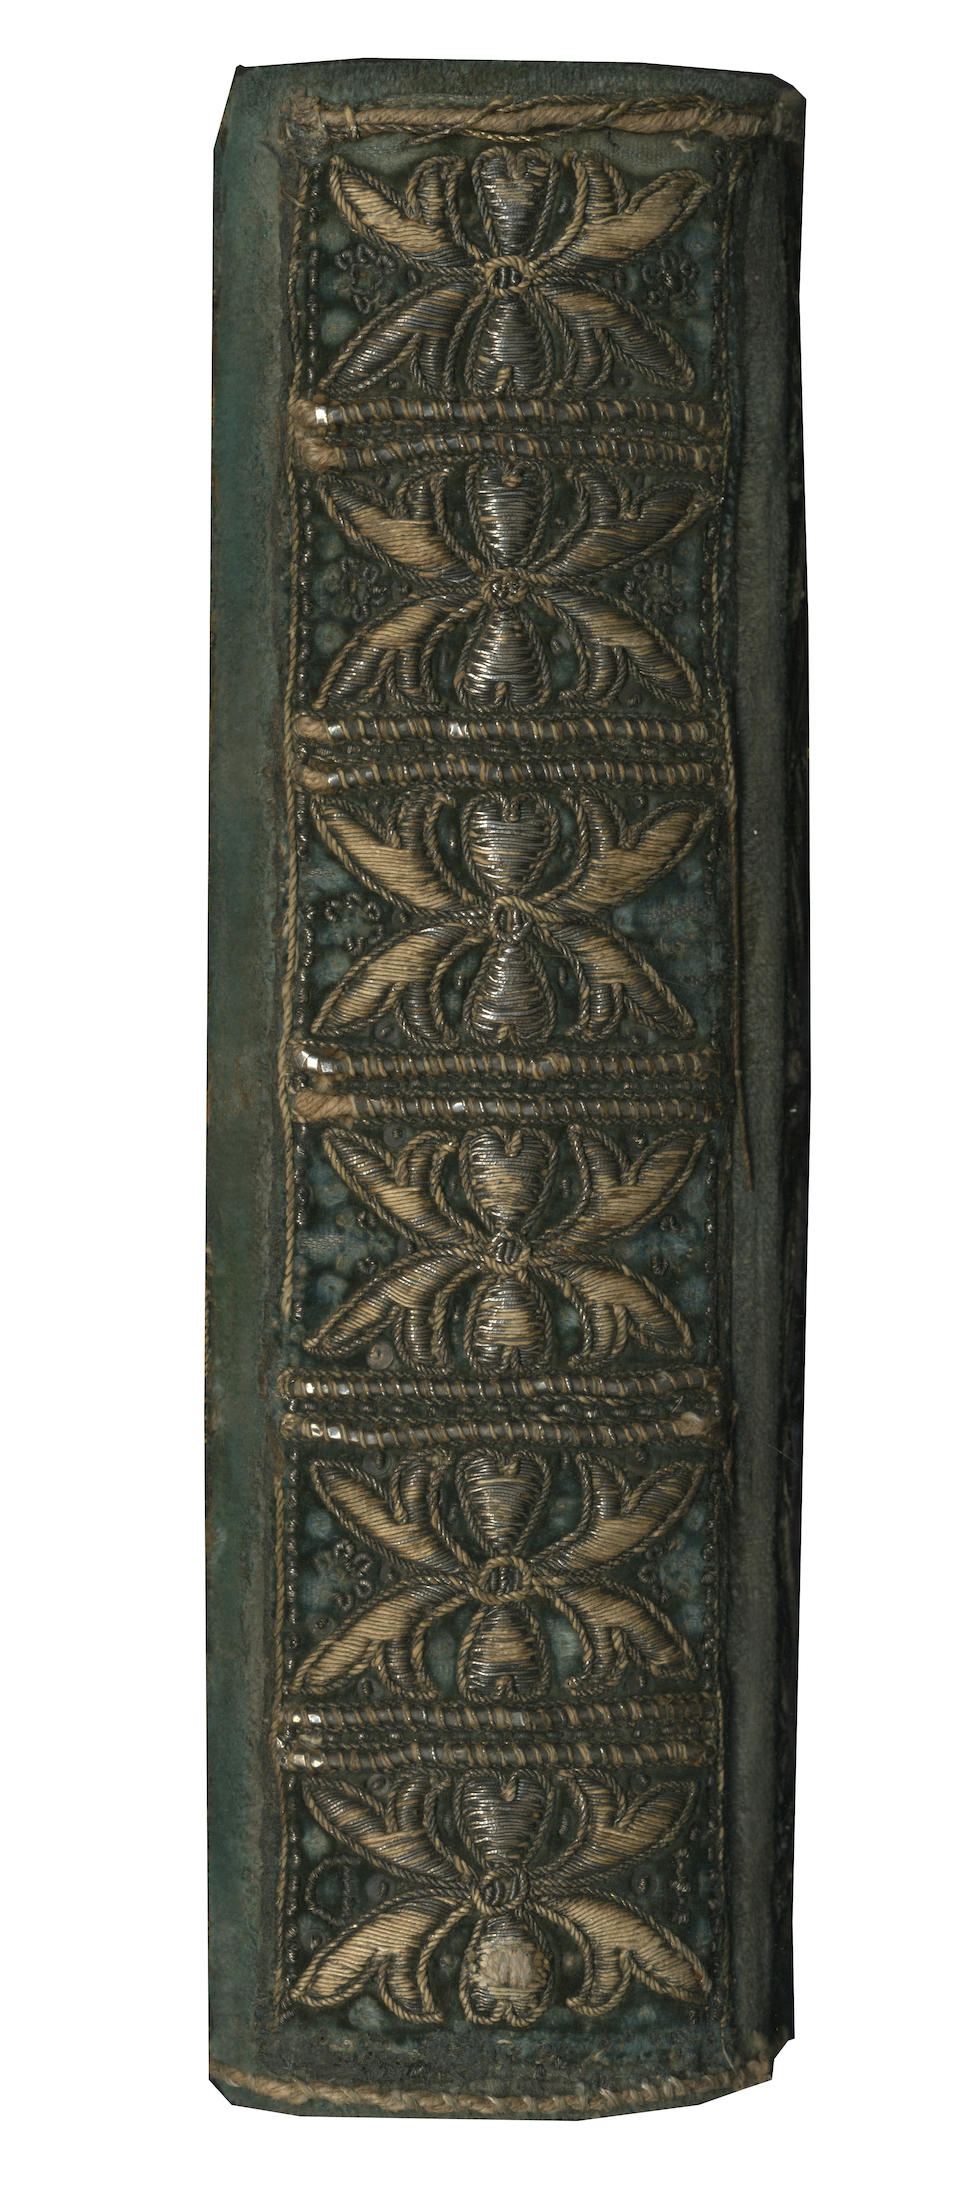 CHARLES I AND II - STONEYWOOD BIBLE The Holy Bible, Containing the Old Testament and the New, sold as an association item